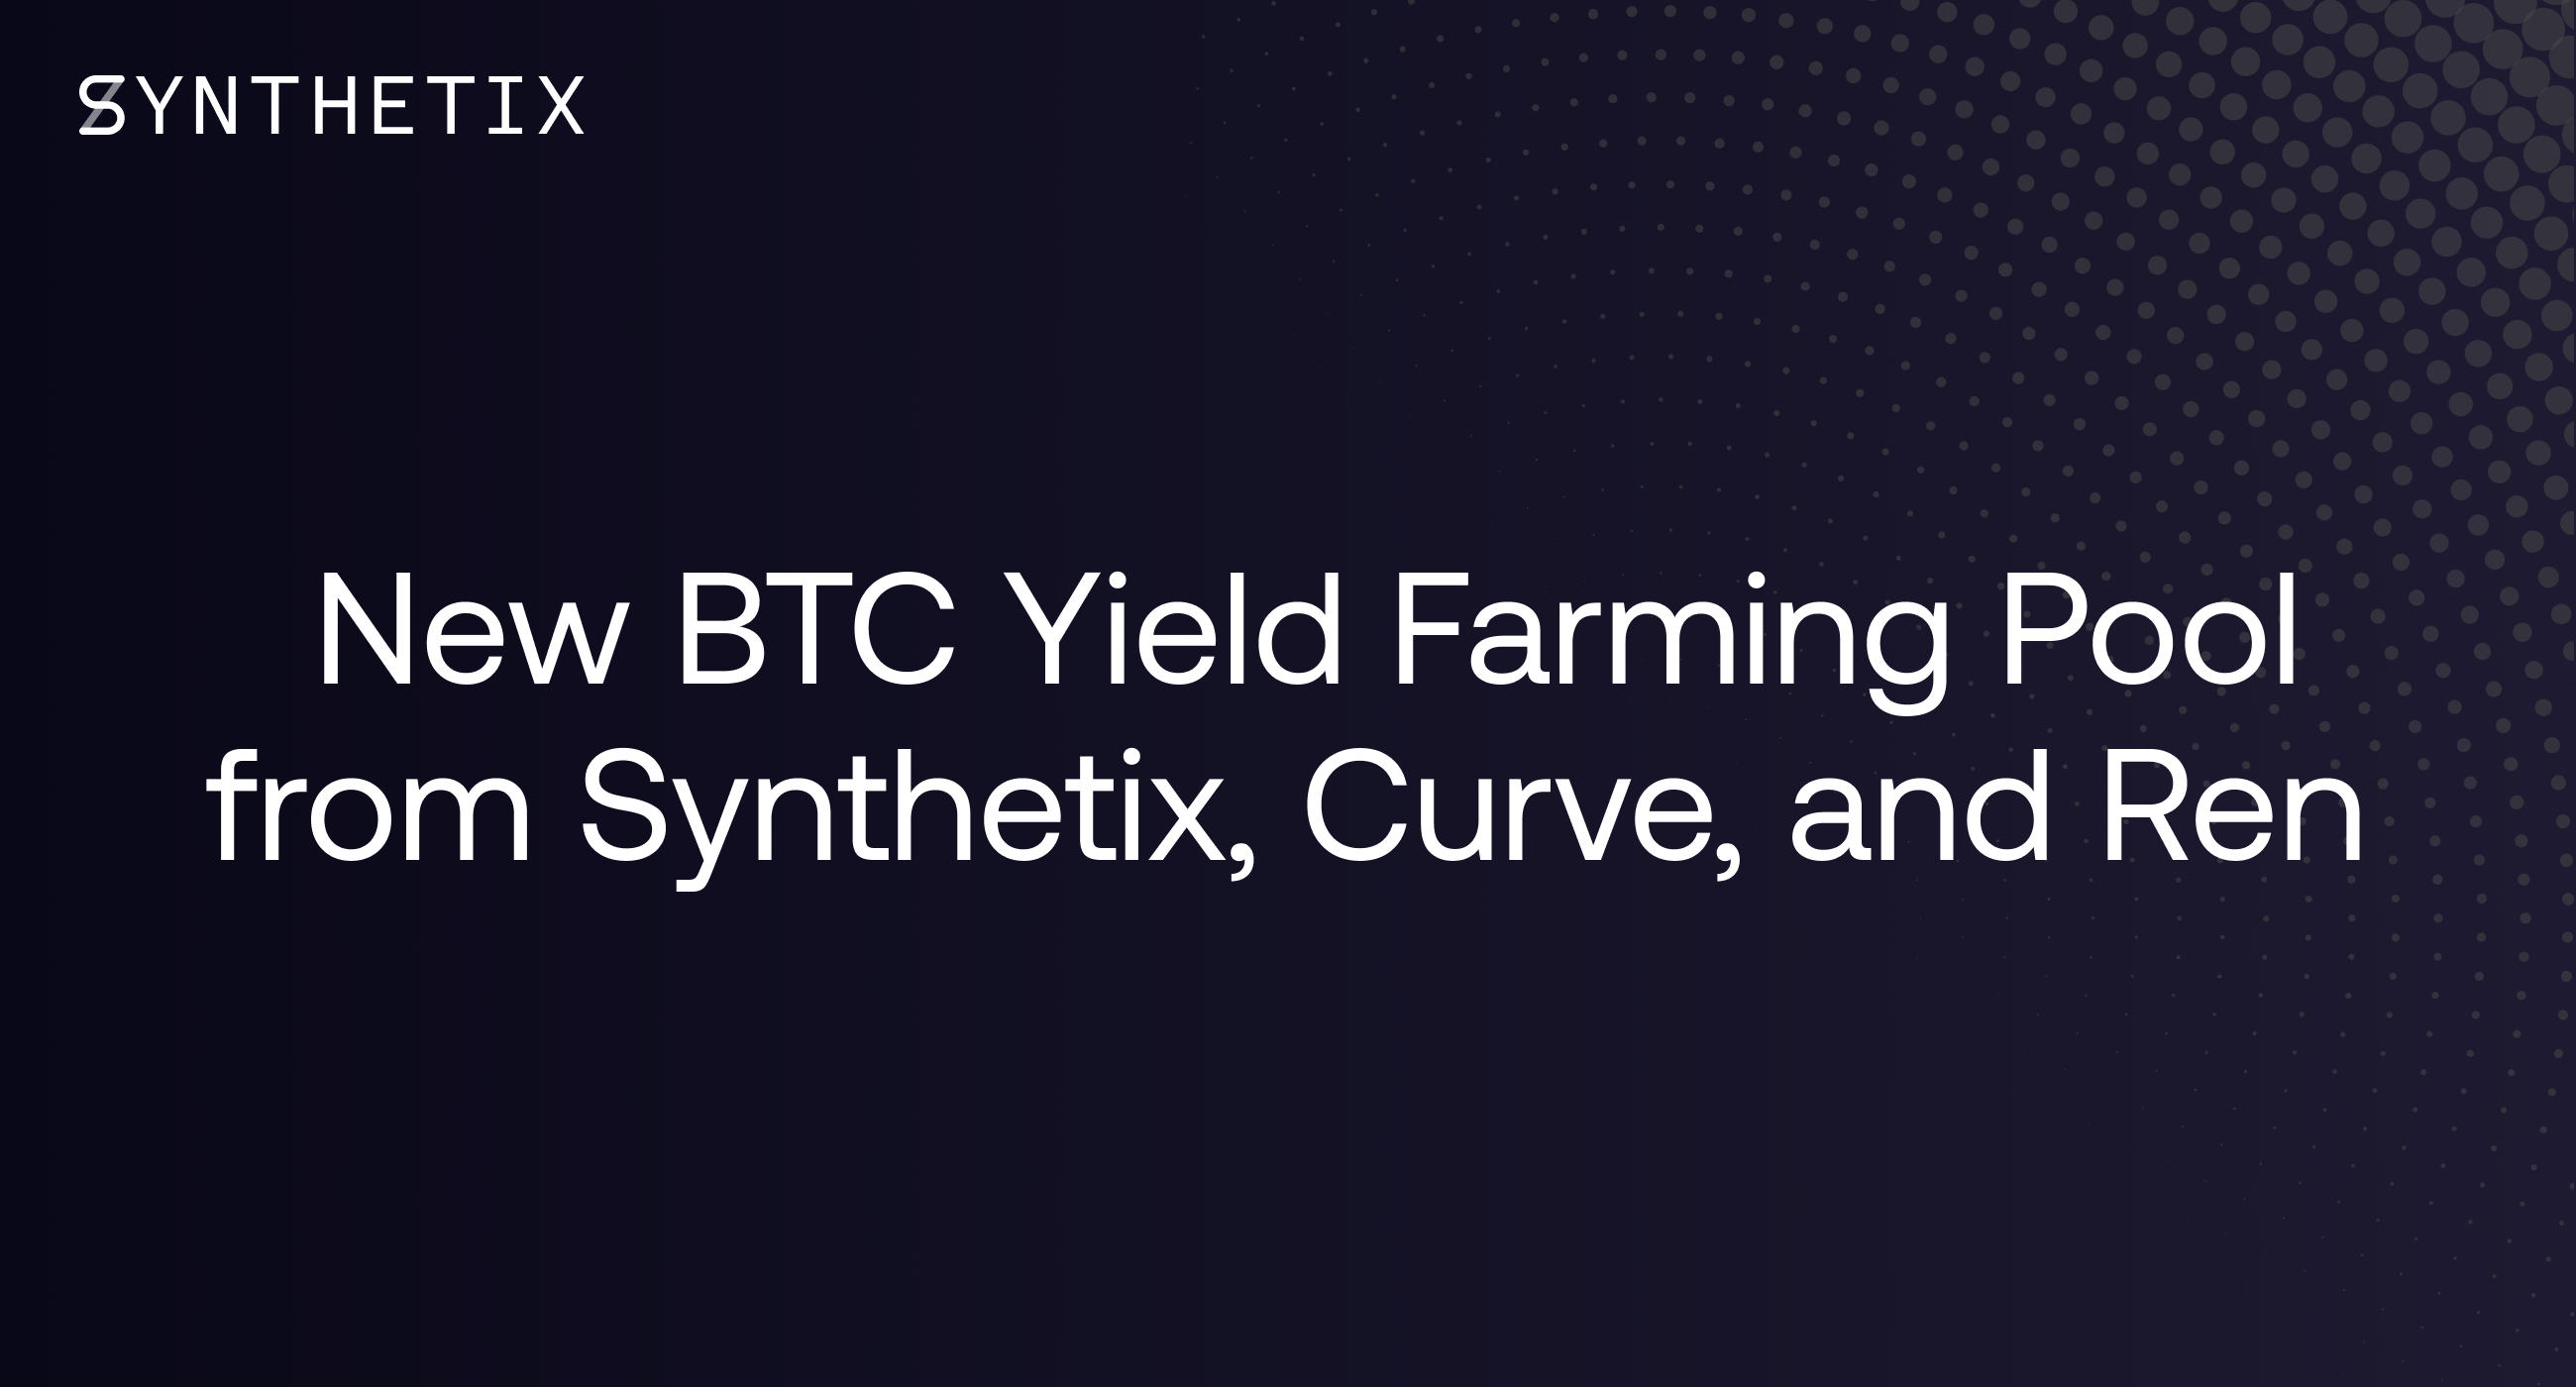 New BTC Yield Farming Pool from Synthetix, Curve, and Ren